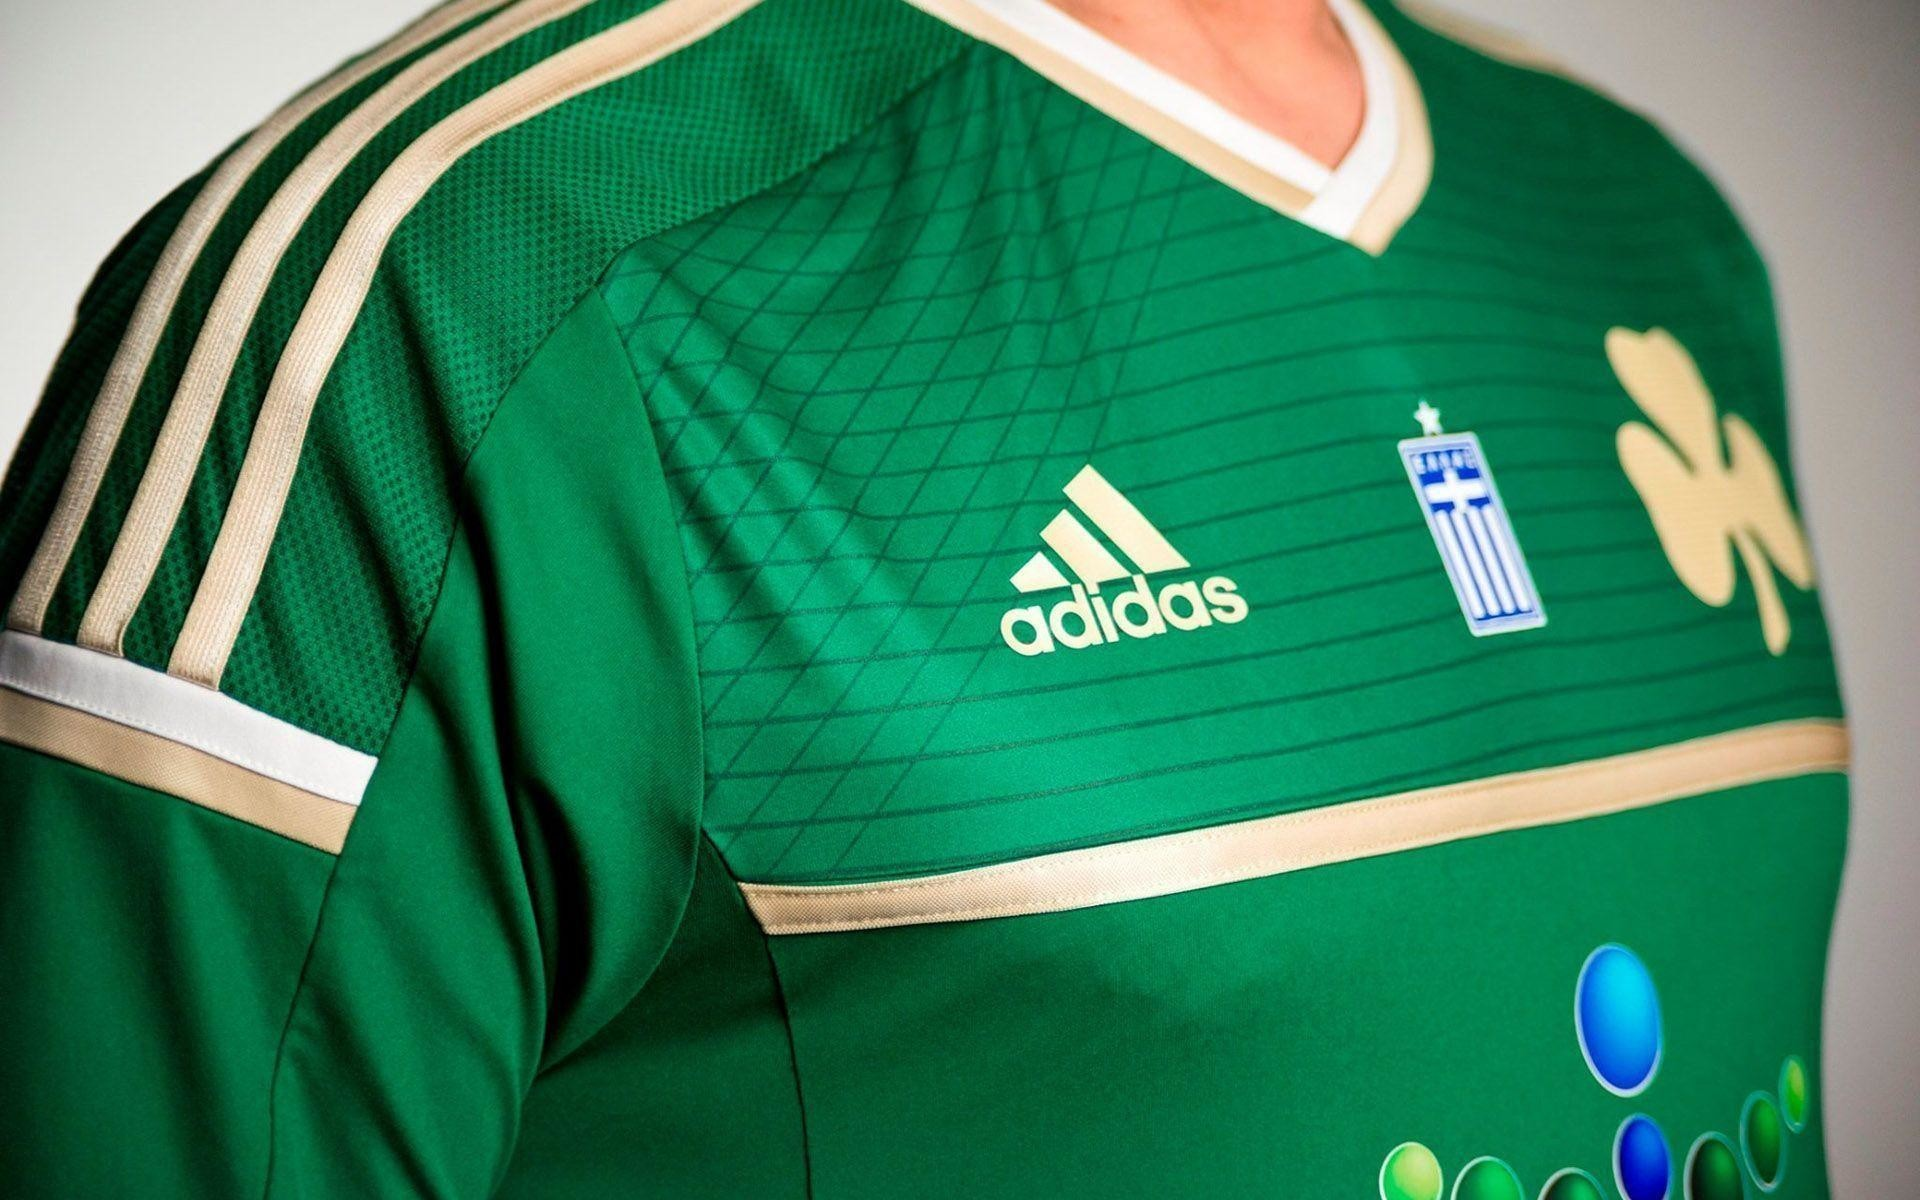 1920x1200  Panathinaikos Jersey 2014-2015 Adidas Home Kit Wallpaper Wide or .